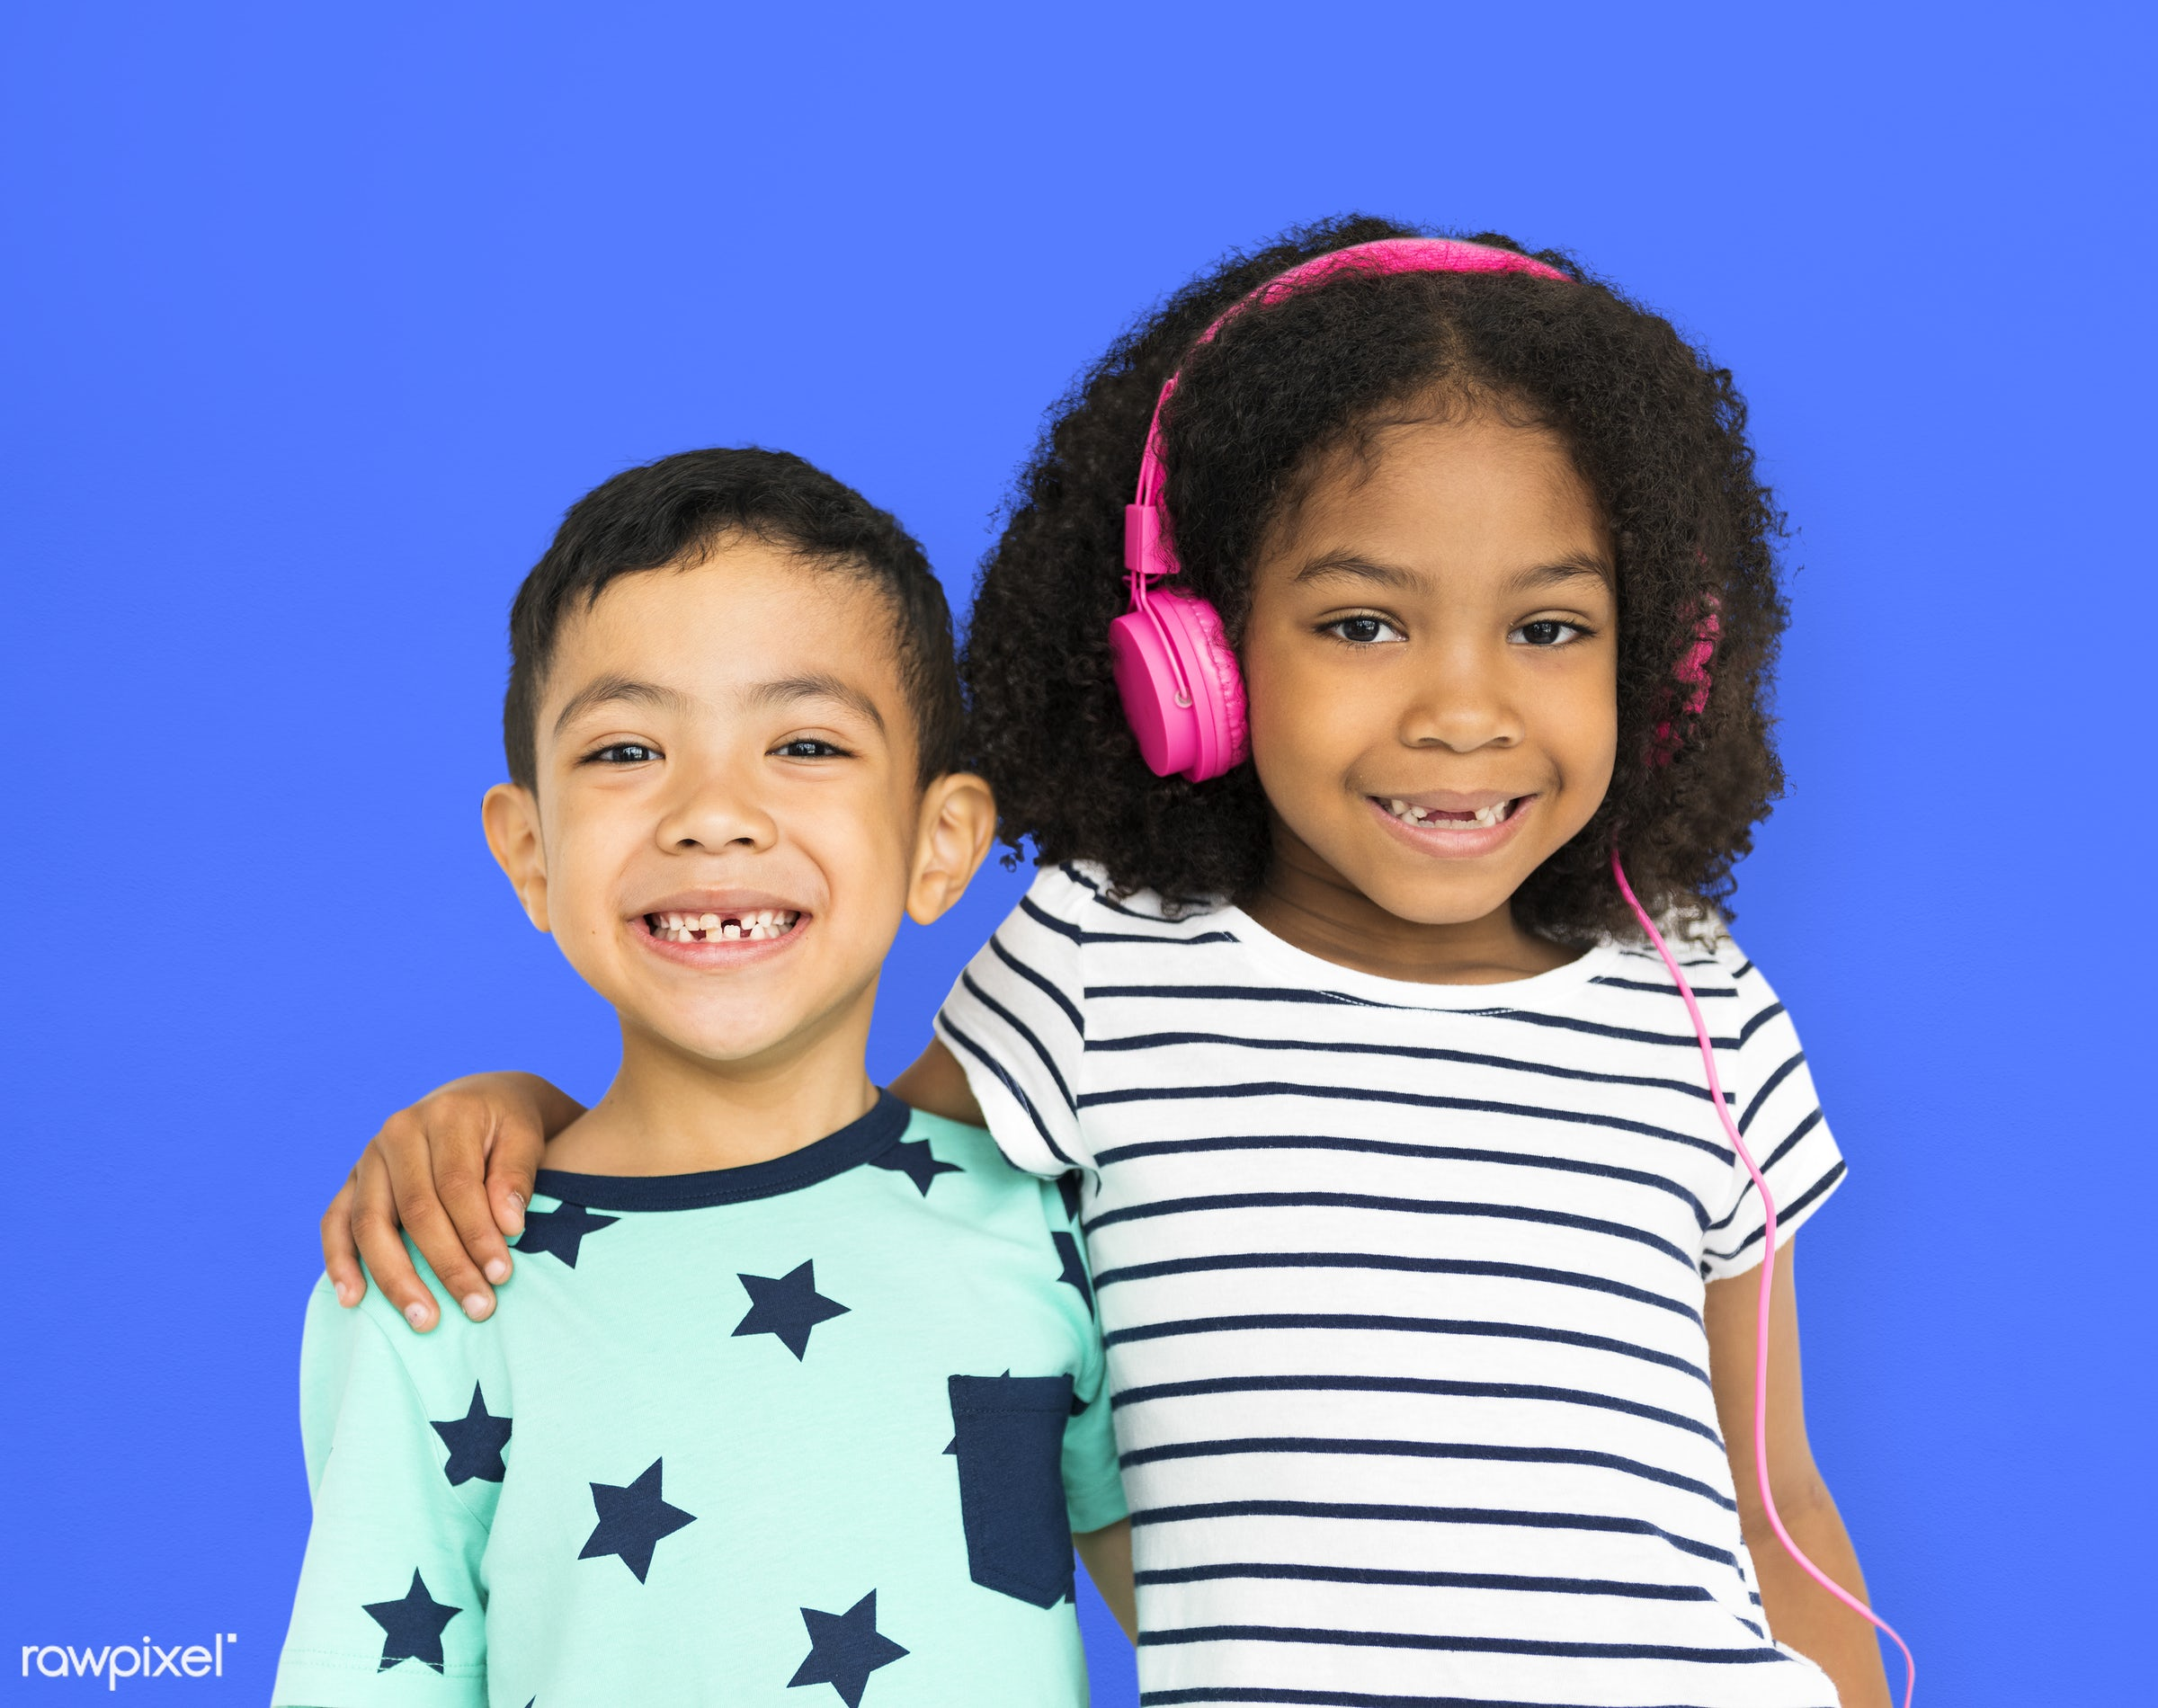 headphones, music, entertainment, listen, hobby, cheerful, child, children, diversity, friends, friendship, group, isolated...